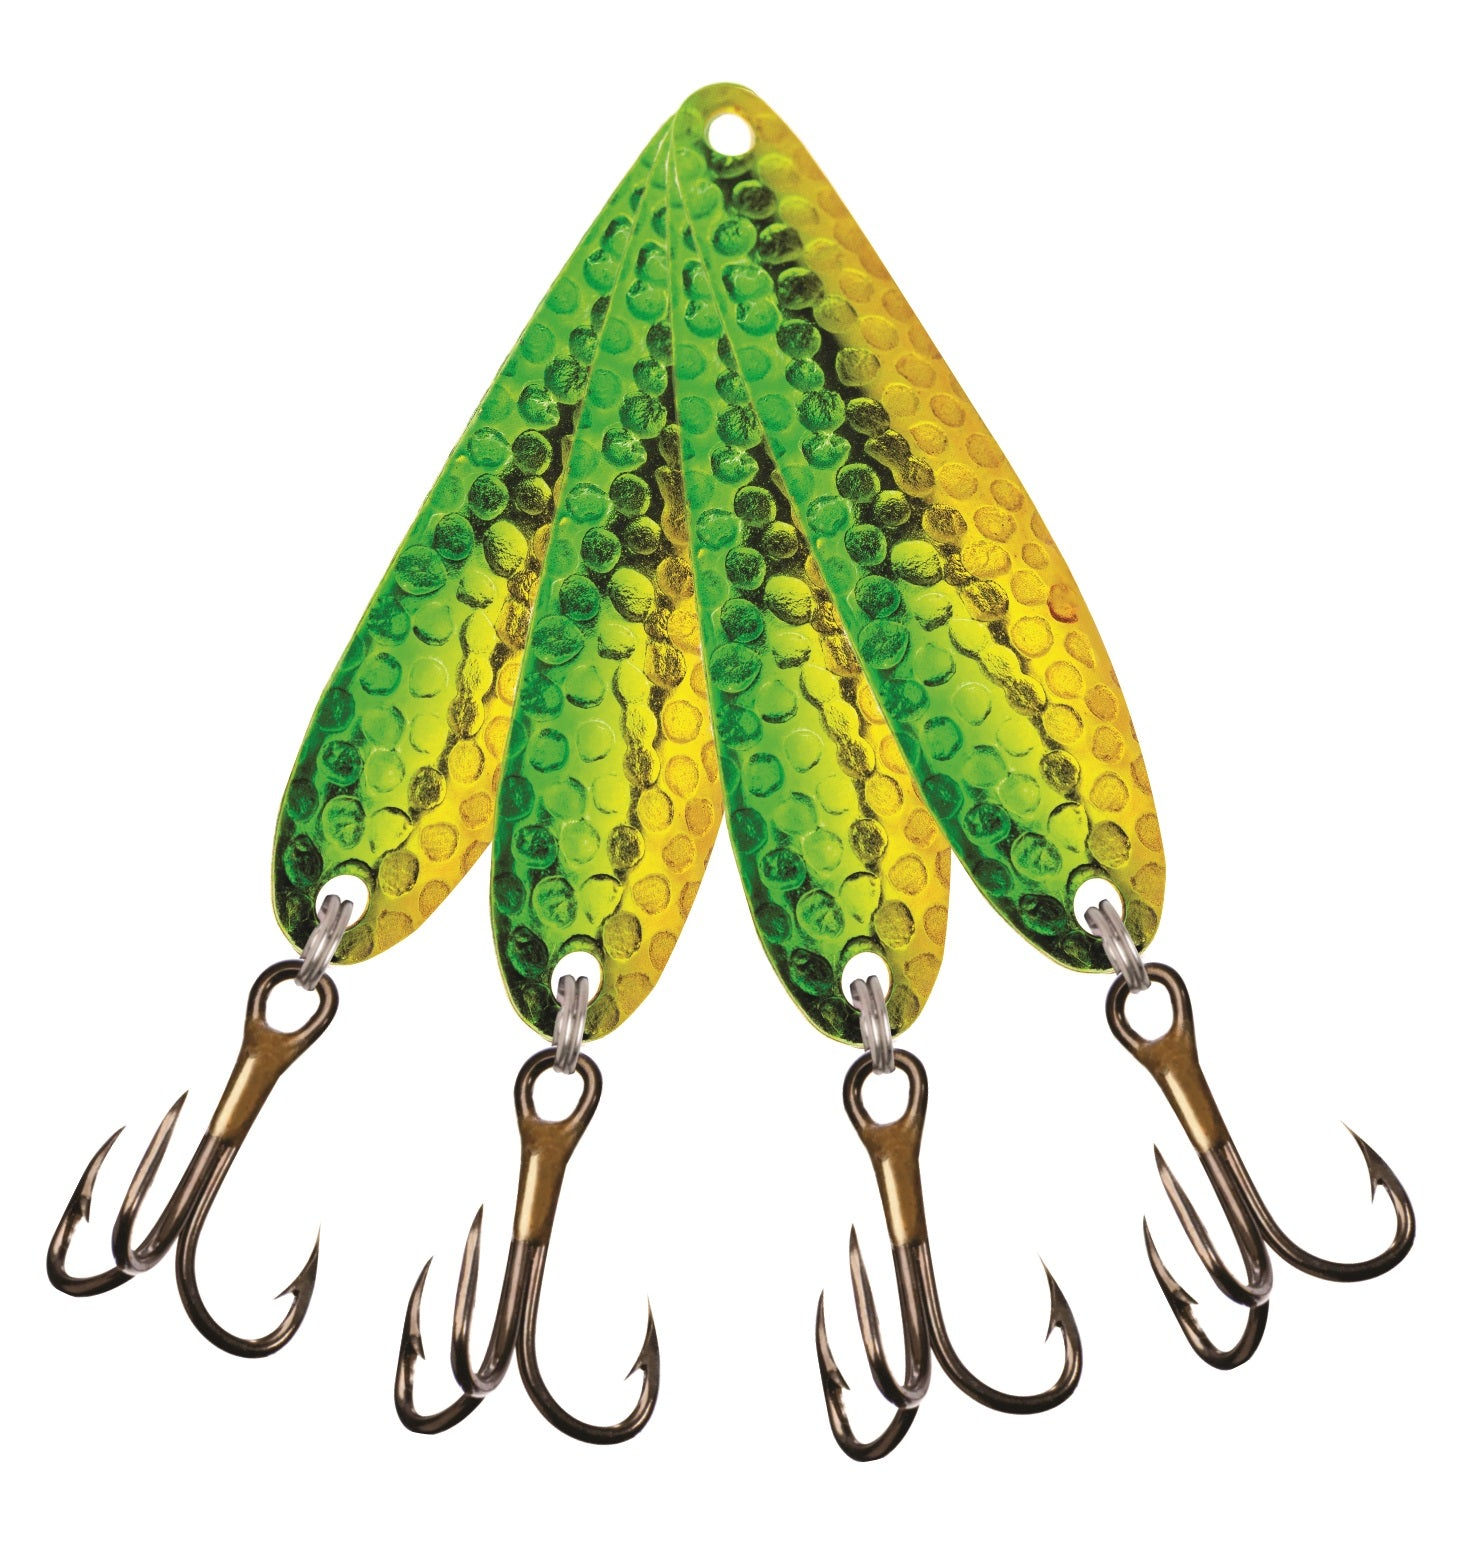 Drag-N Lures trolling spoons - Grandma's Pickle (4-pack)